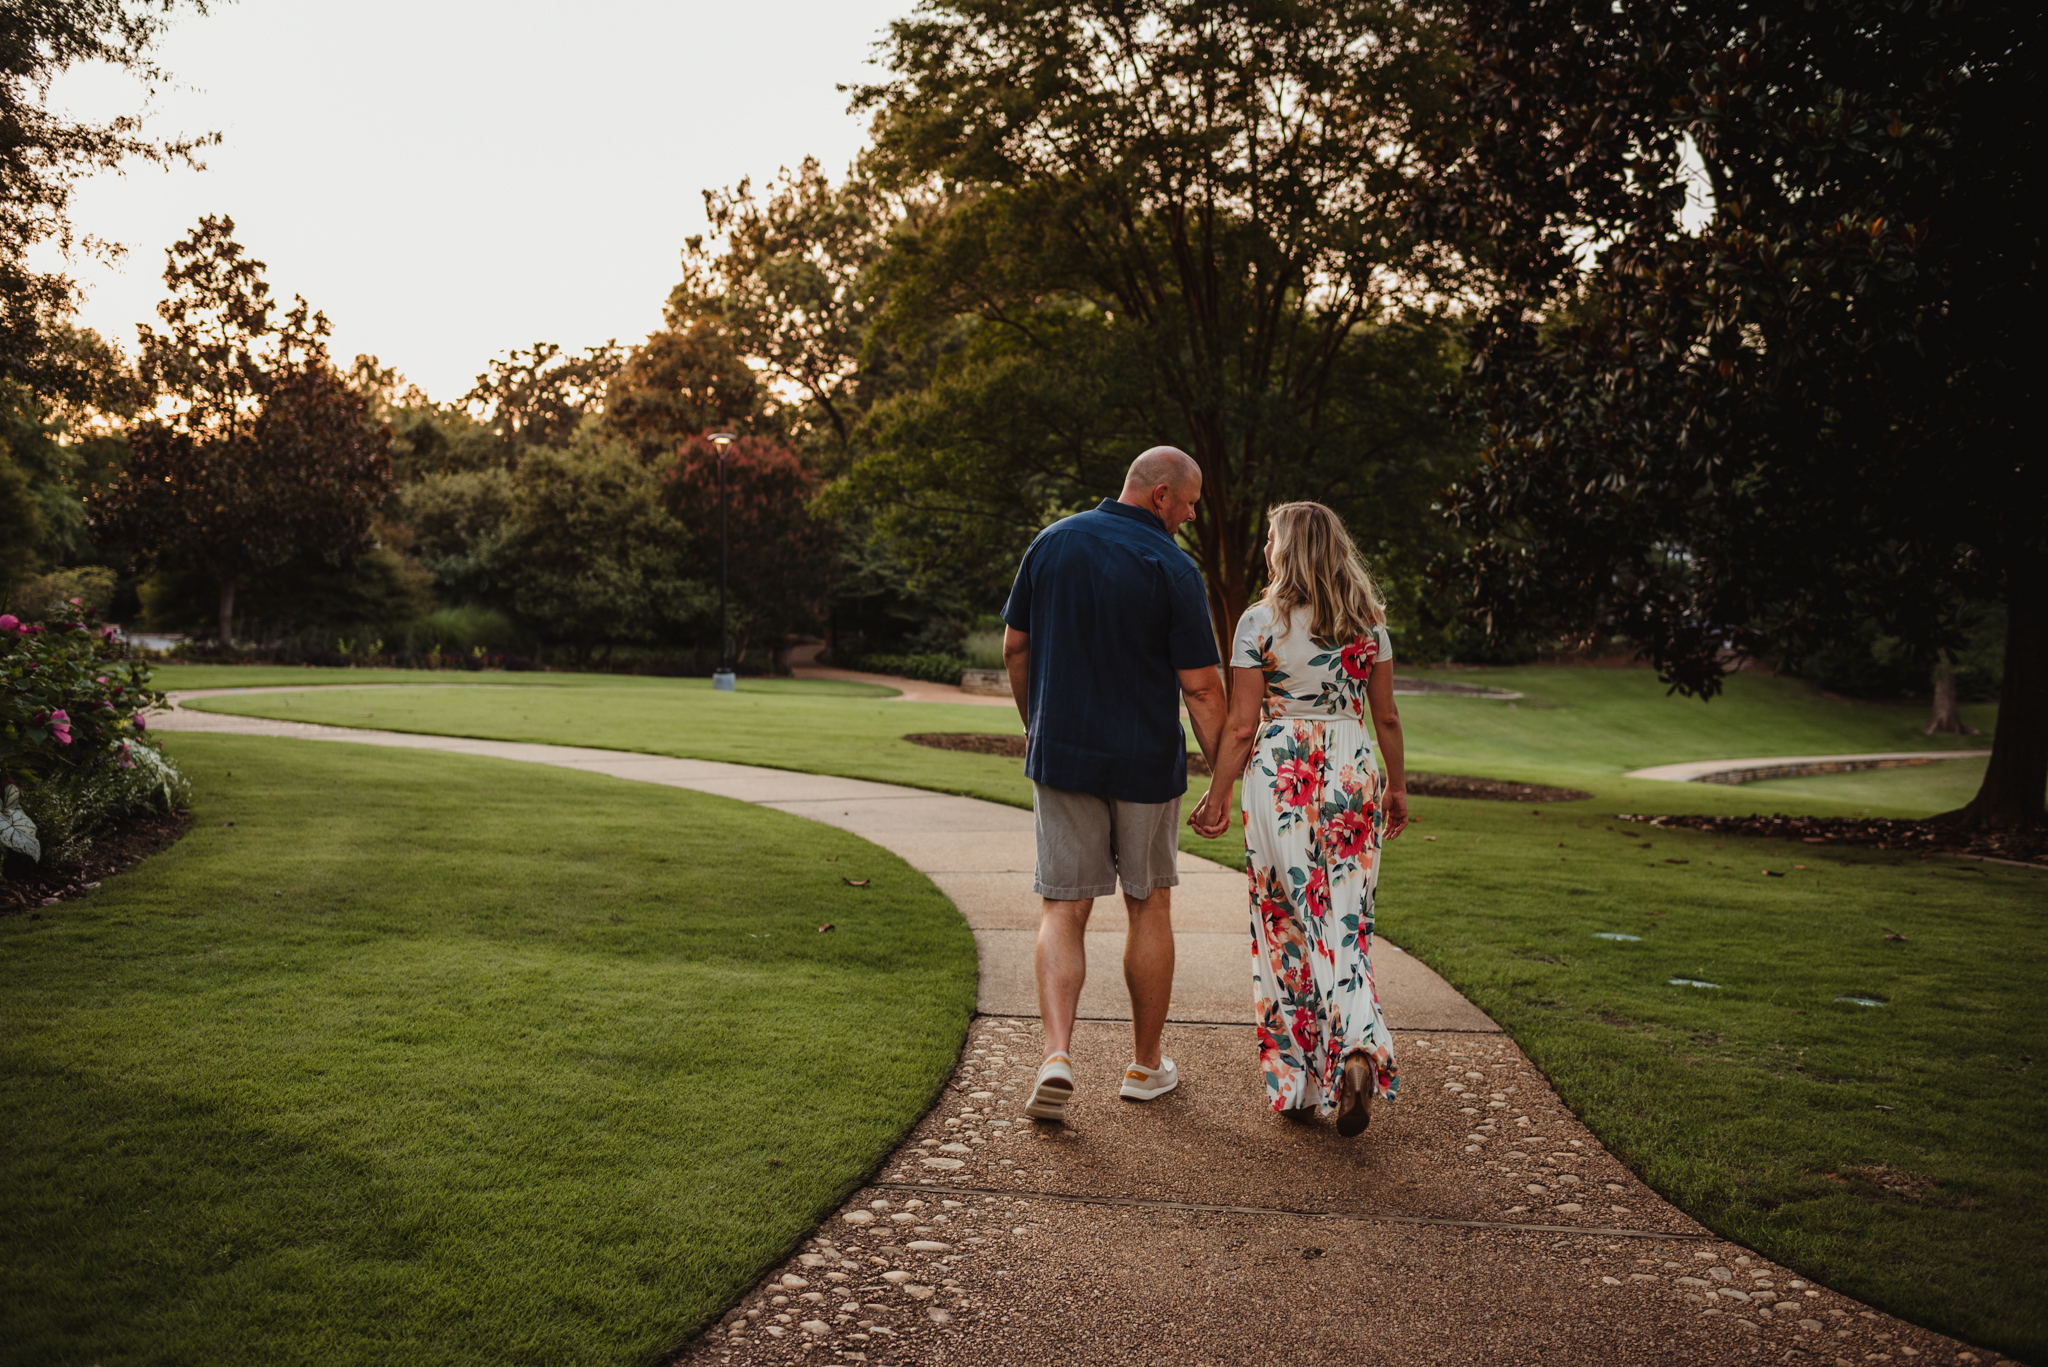 The bride and groom hold hands as they walk down the path during their engagement session at Fred Fletcher Park in Raleigh, North Carolina with Rose Trail Images.